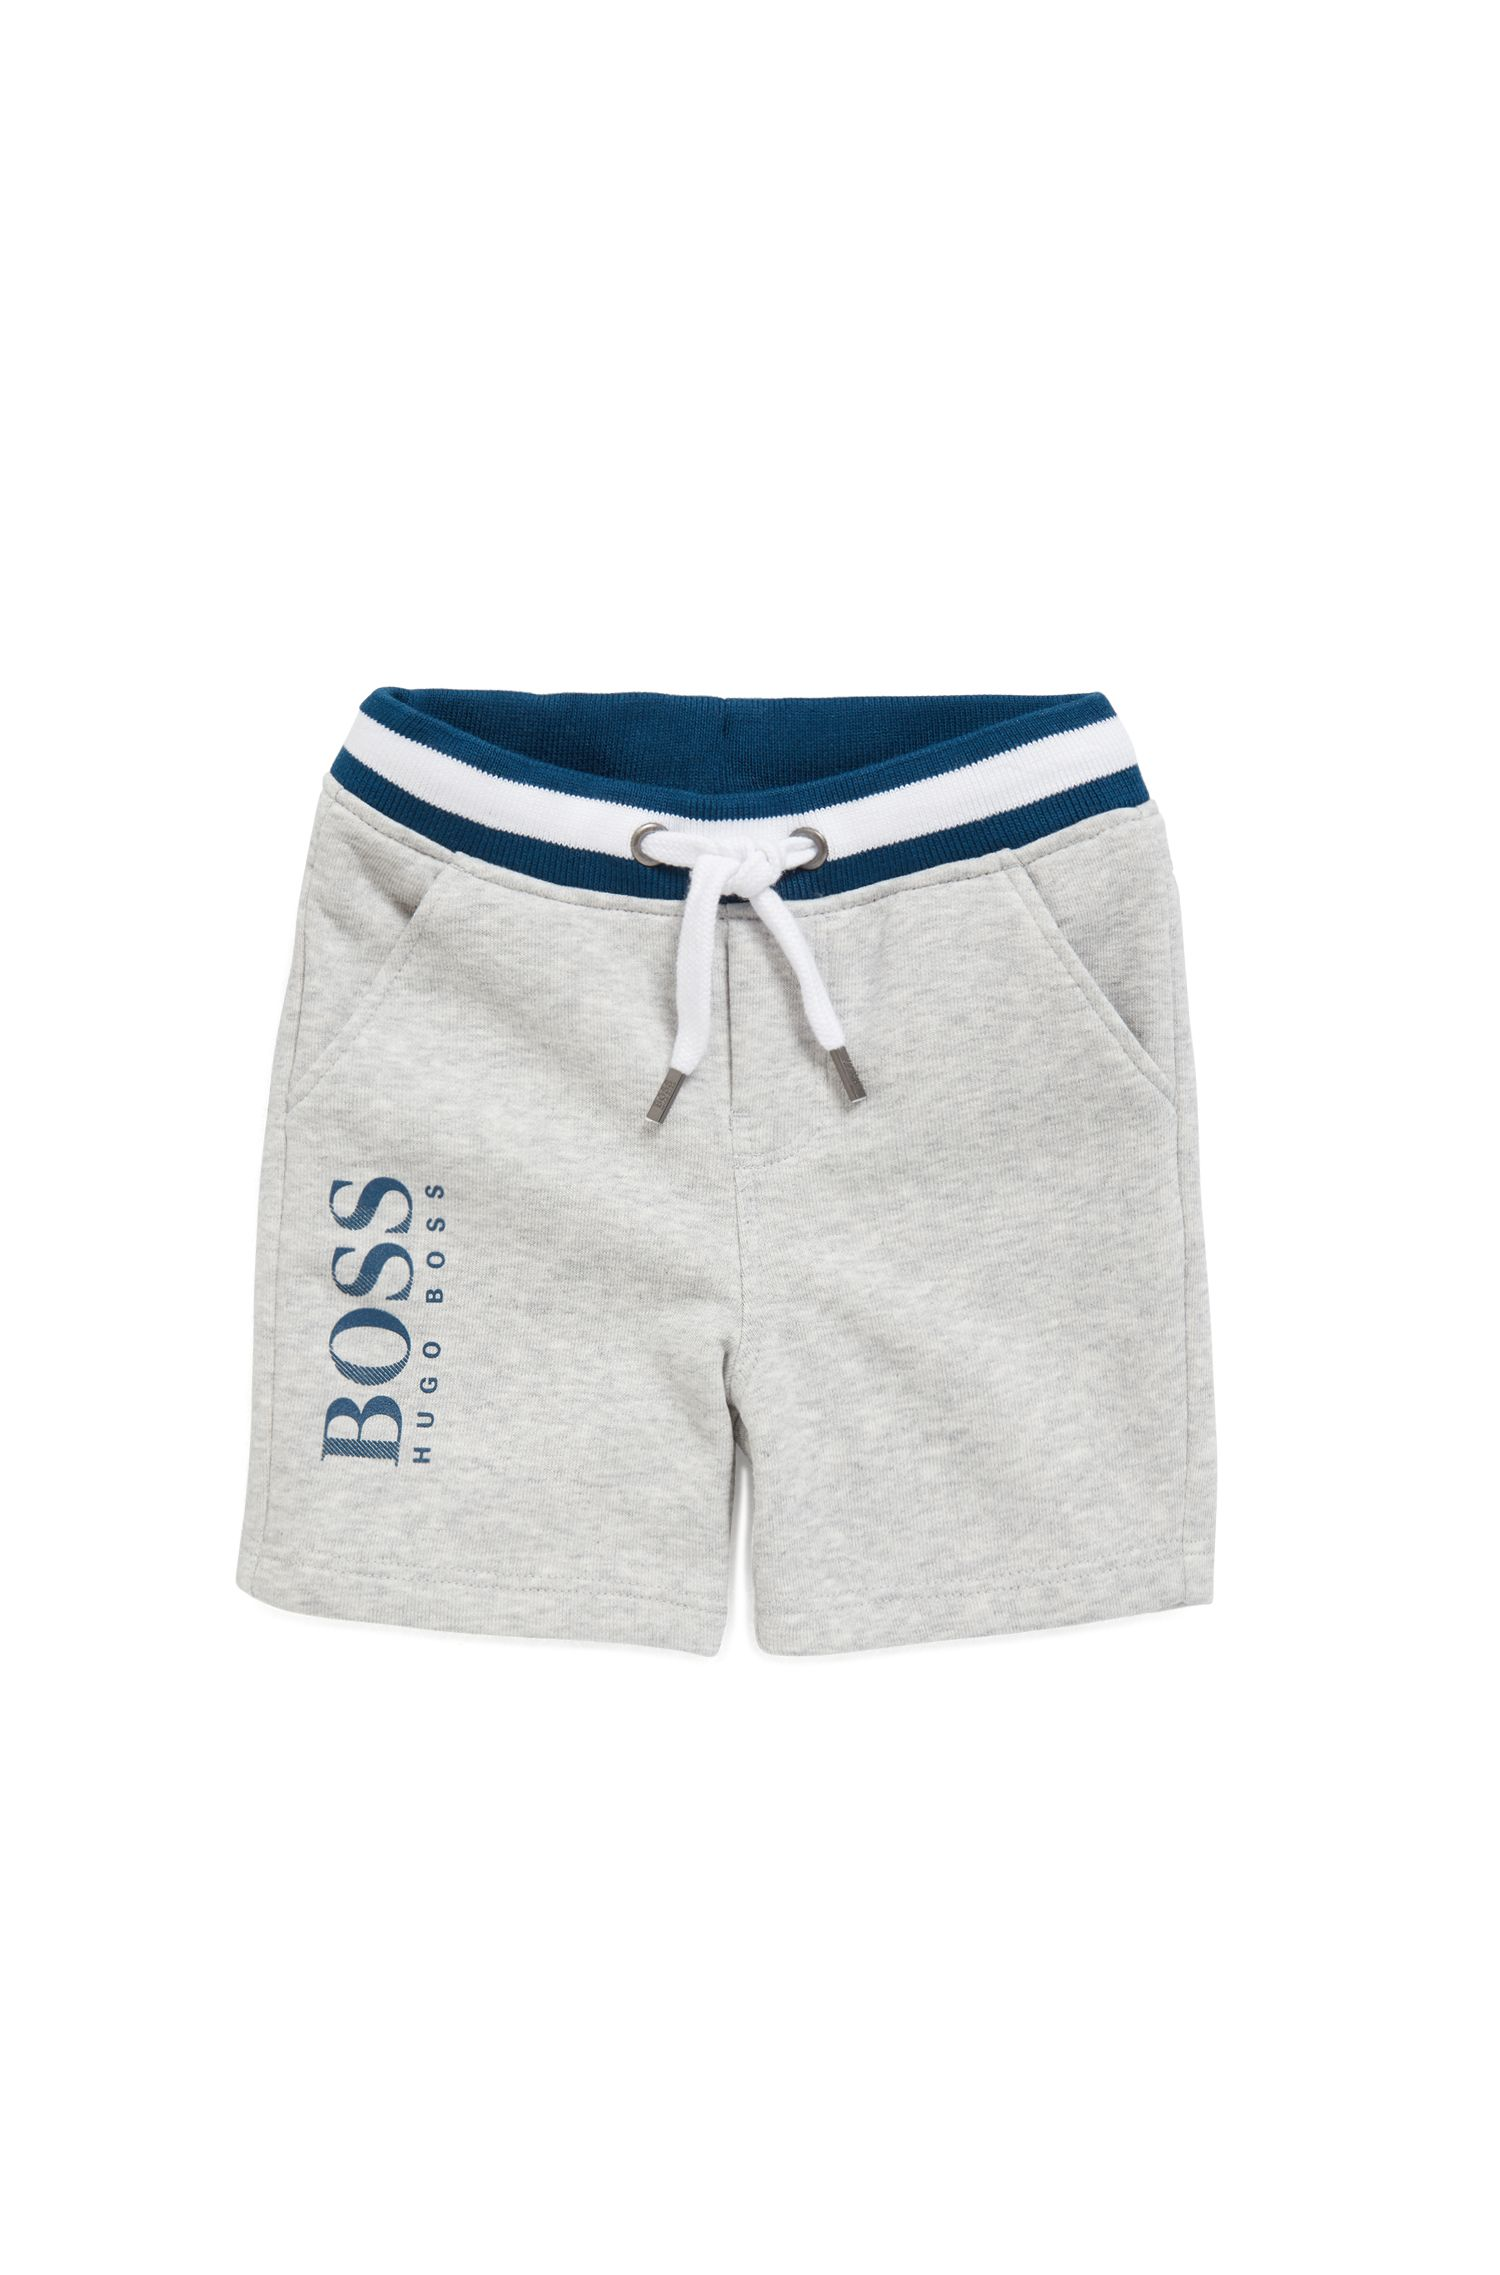 Kids' Bermuda shorts in French terry